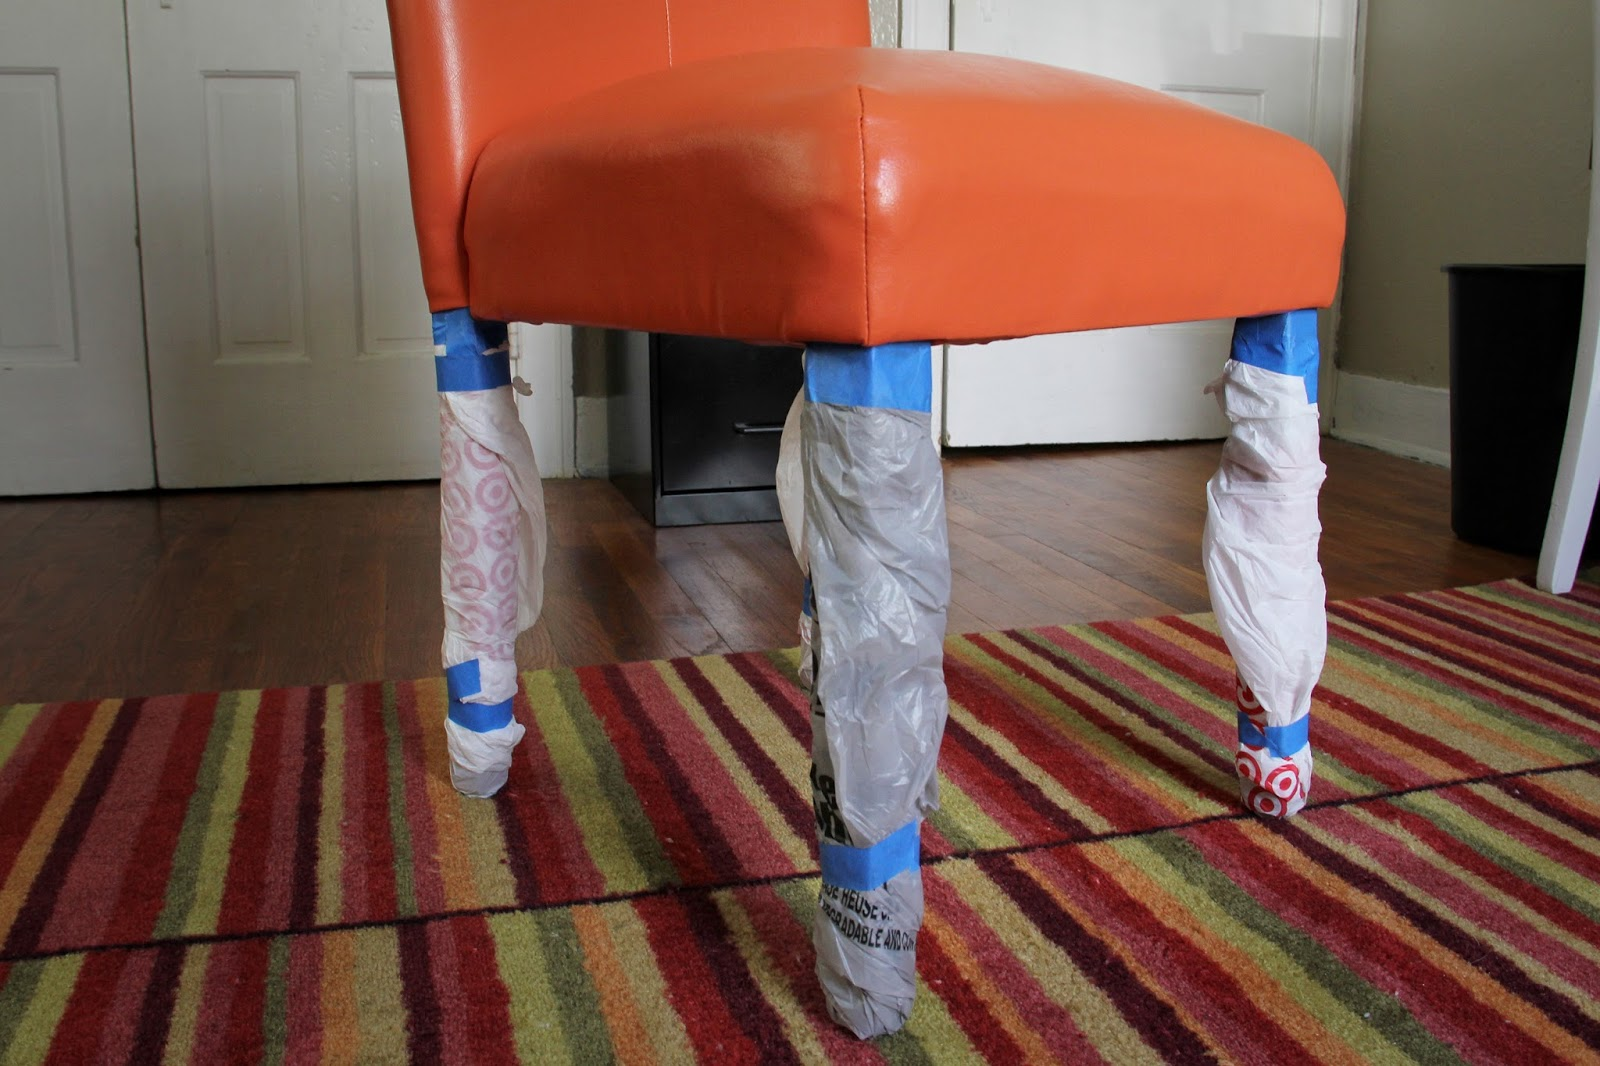 DIY Painted Vinyl: Transform a vinyl piece of furniture with paint (yes it's possible!)